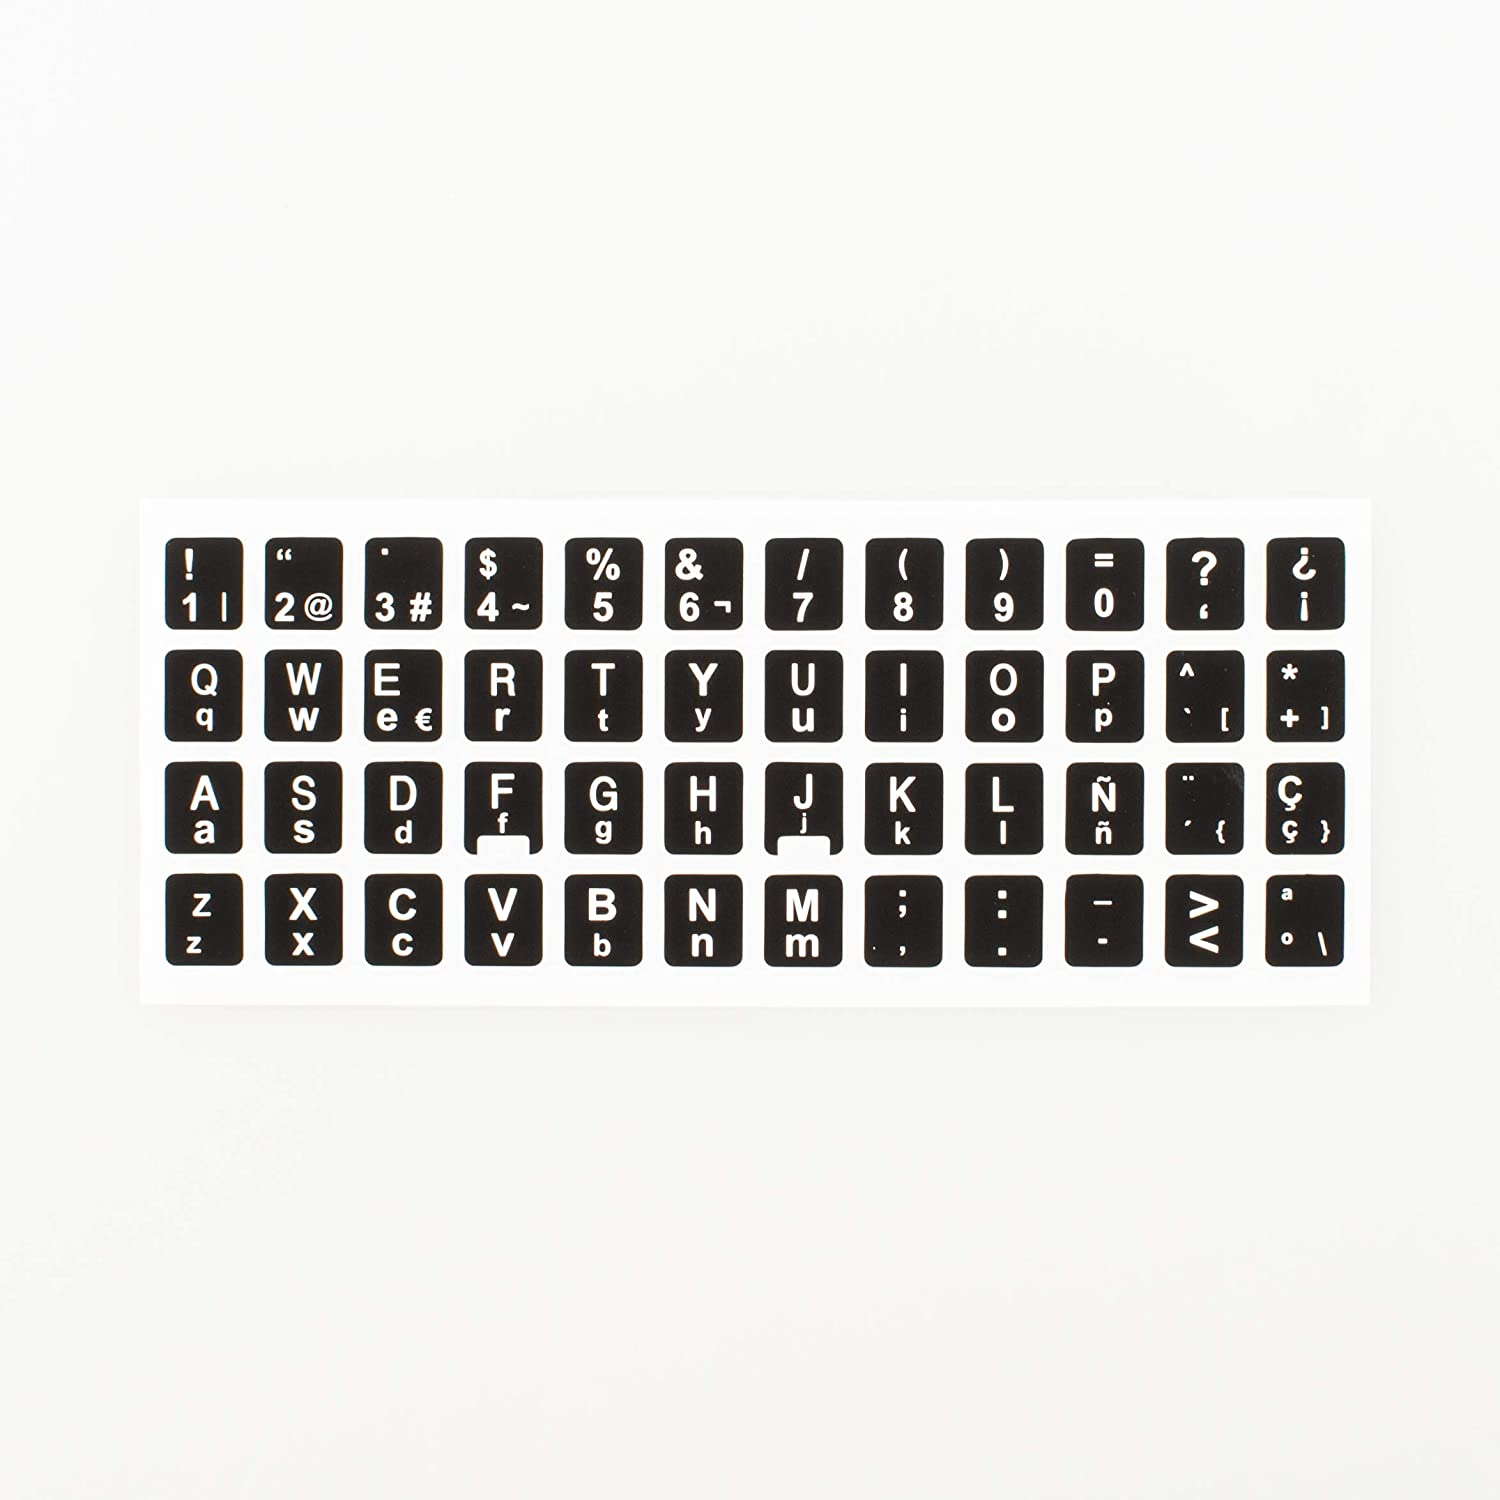 [2 Packs] Replacement English Keyboard Stickers on Non Transparent Black Background for Any PC and Laptop (ESP)